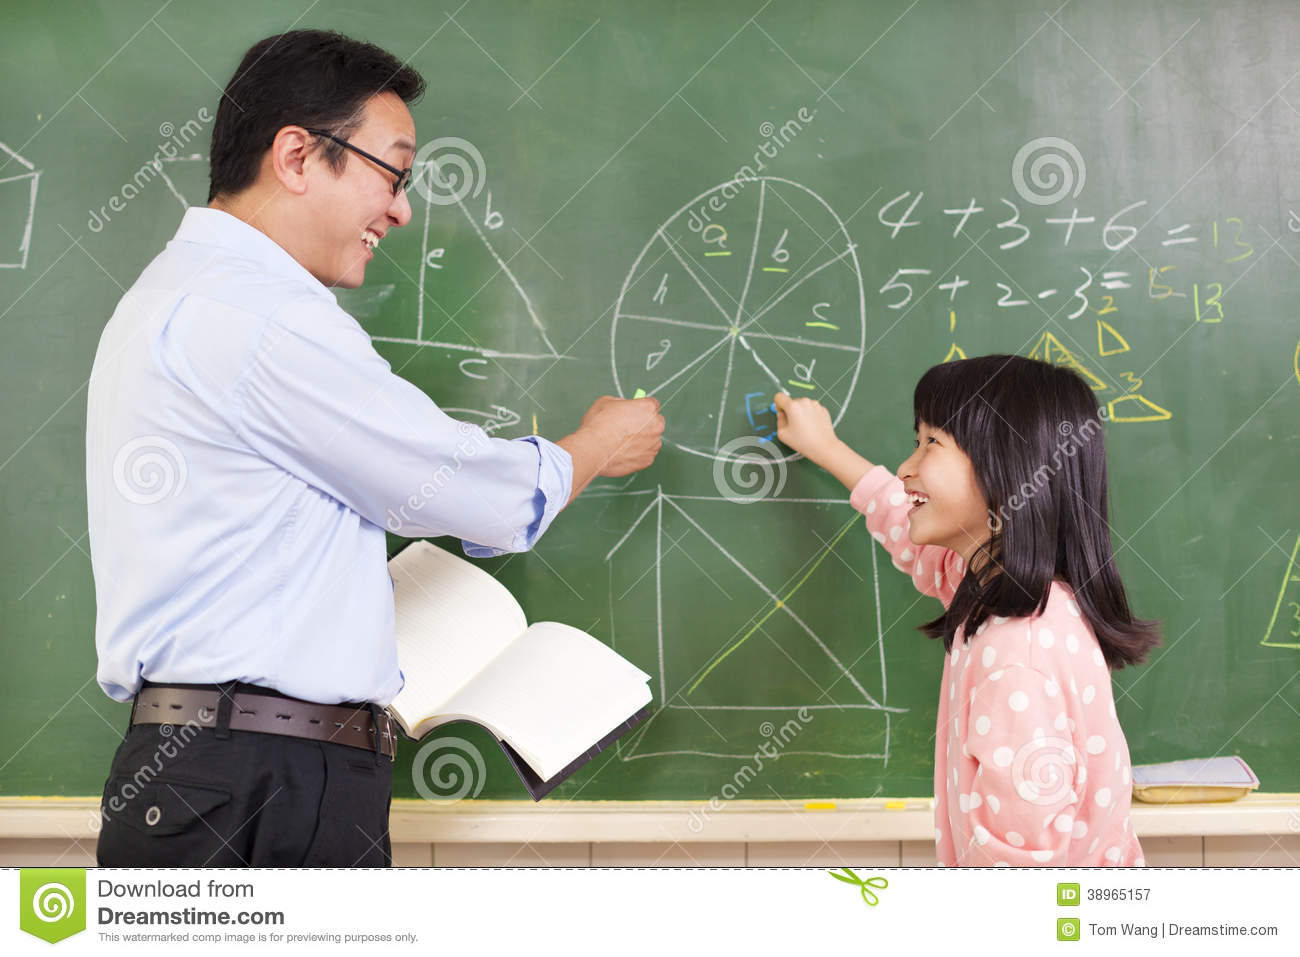 Teacher And Student Discussing Math Questions Stock Image - Image of ...